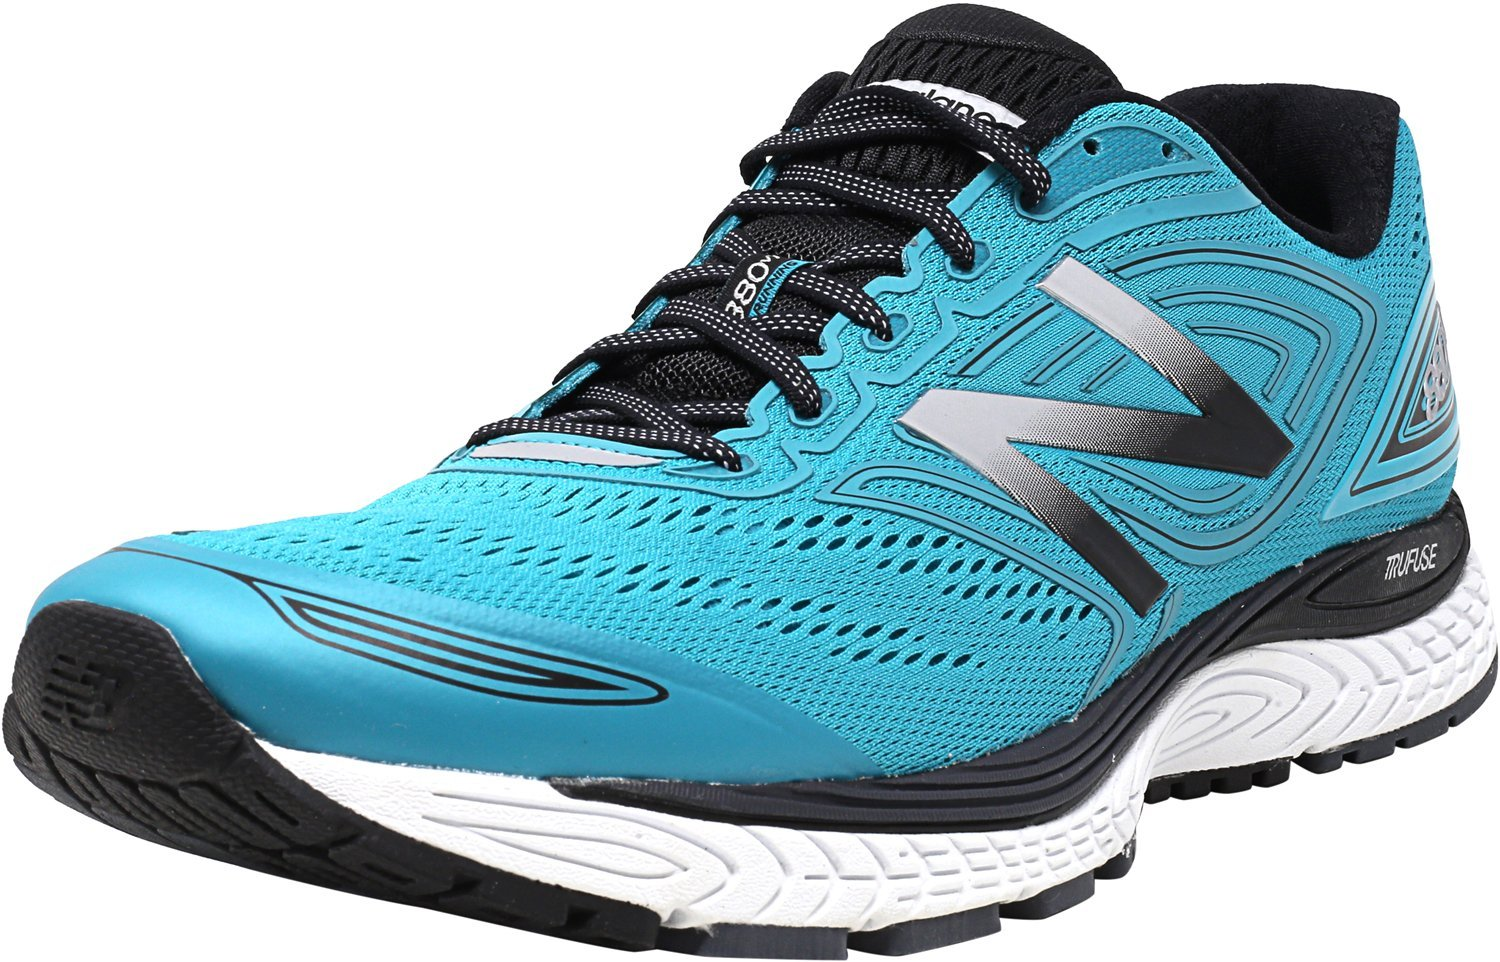 New Balance Men's M880pw7 B01MQZQHRG 12 D(M) US|Teal